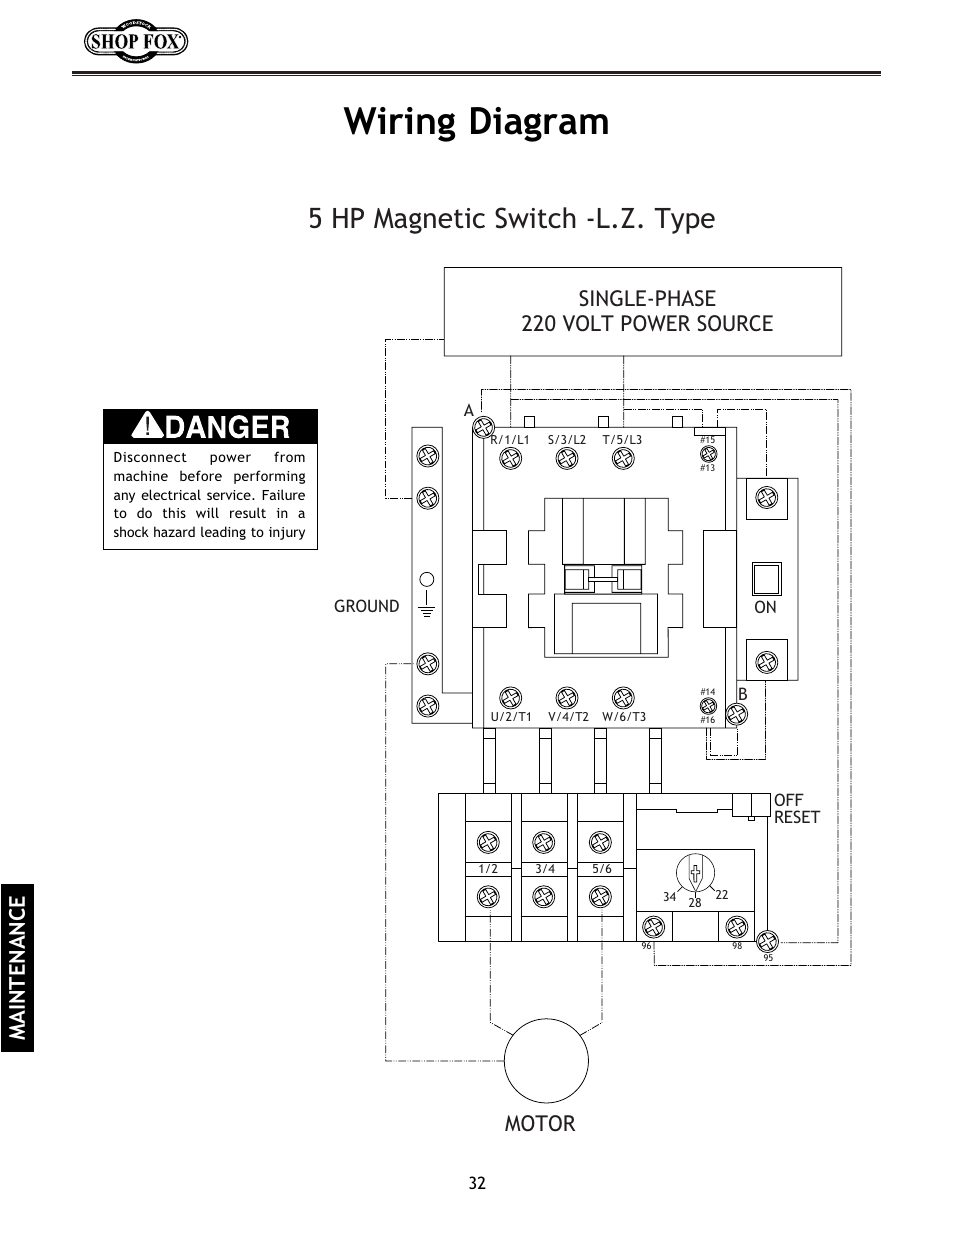 Switch Wiring Diagram Also Square D Motor Starter Wiring Diagram